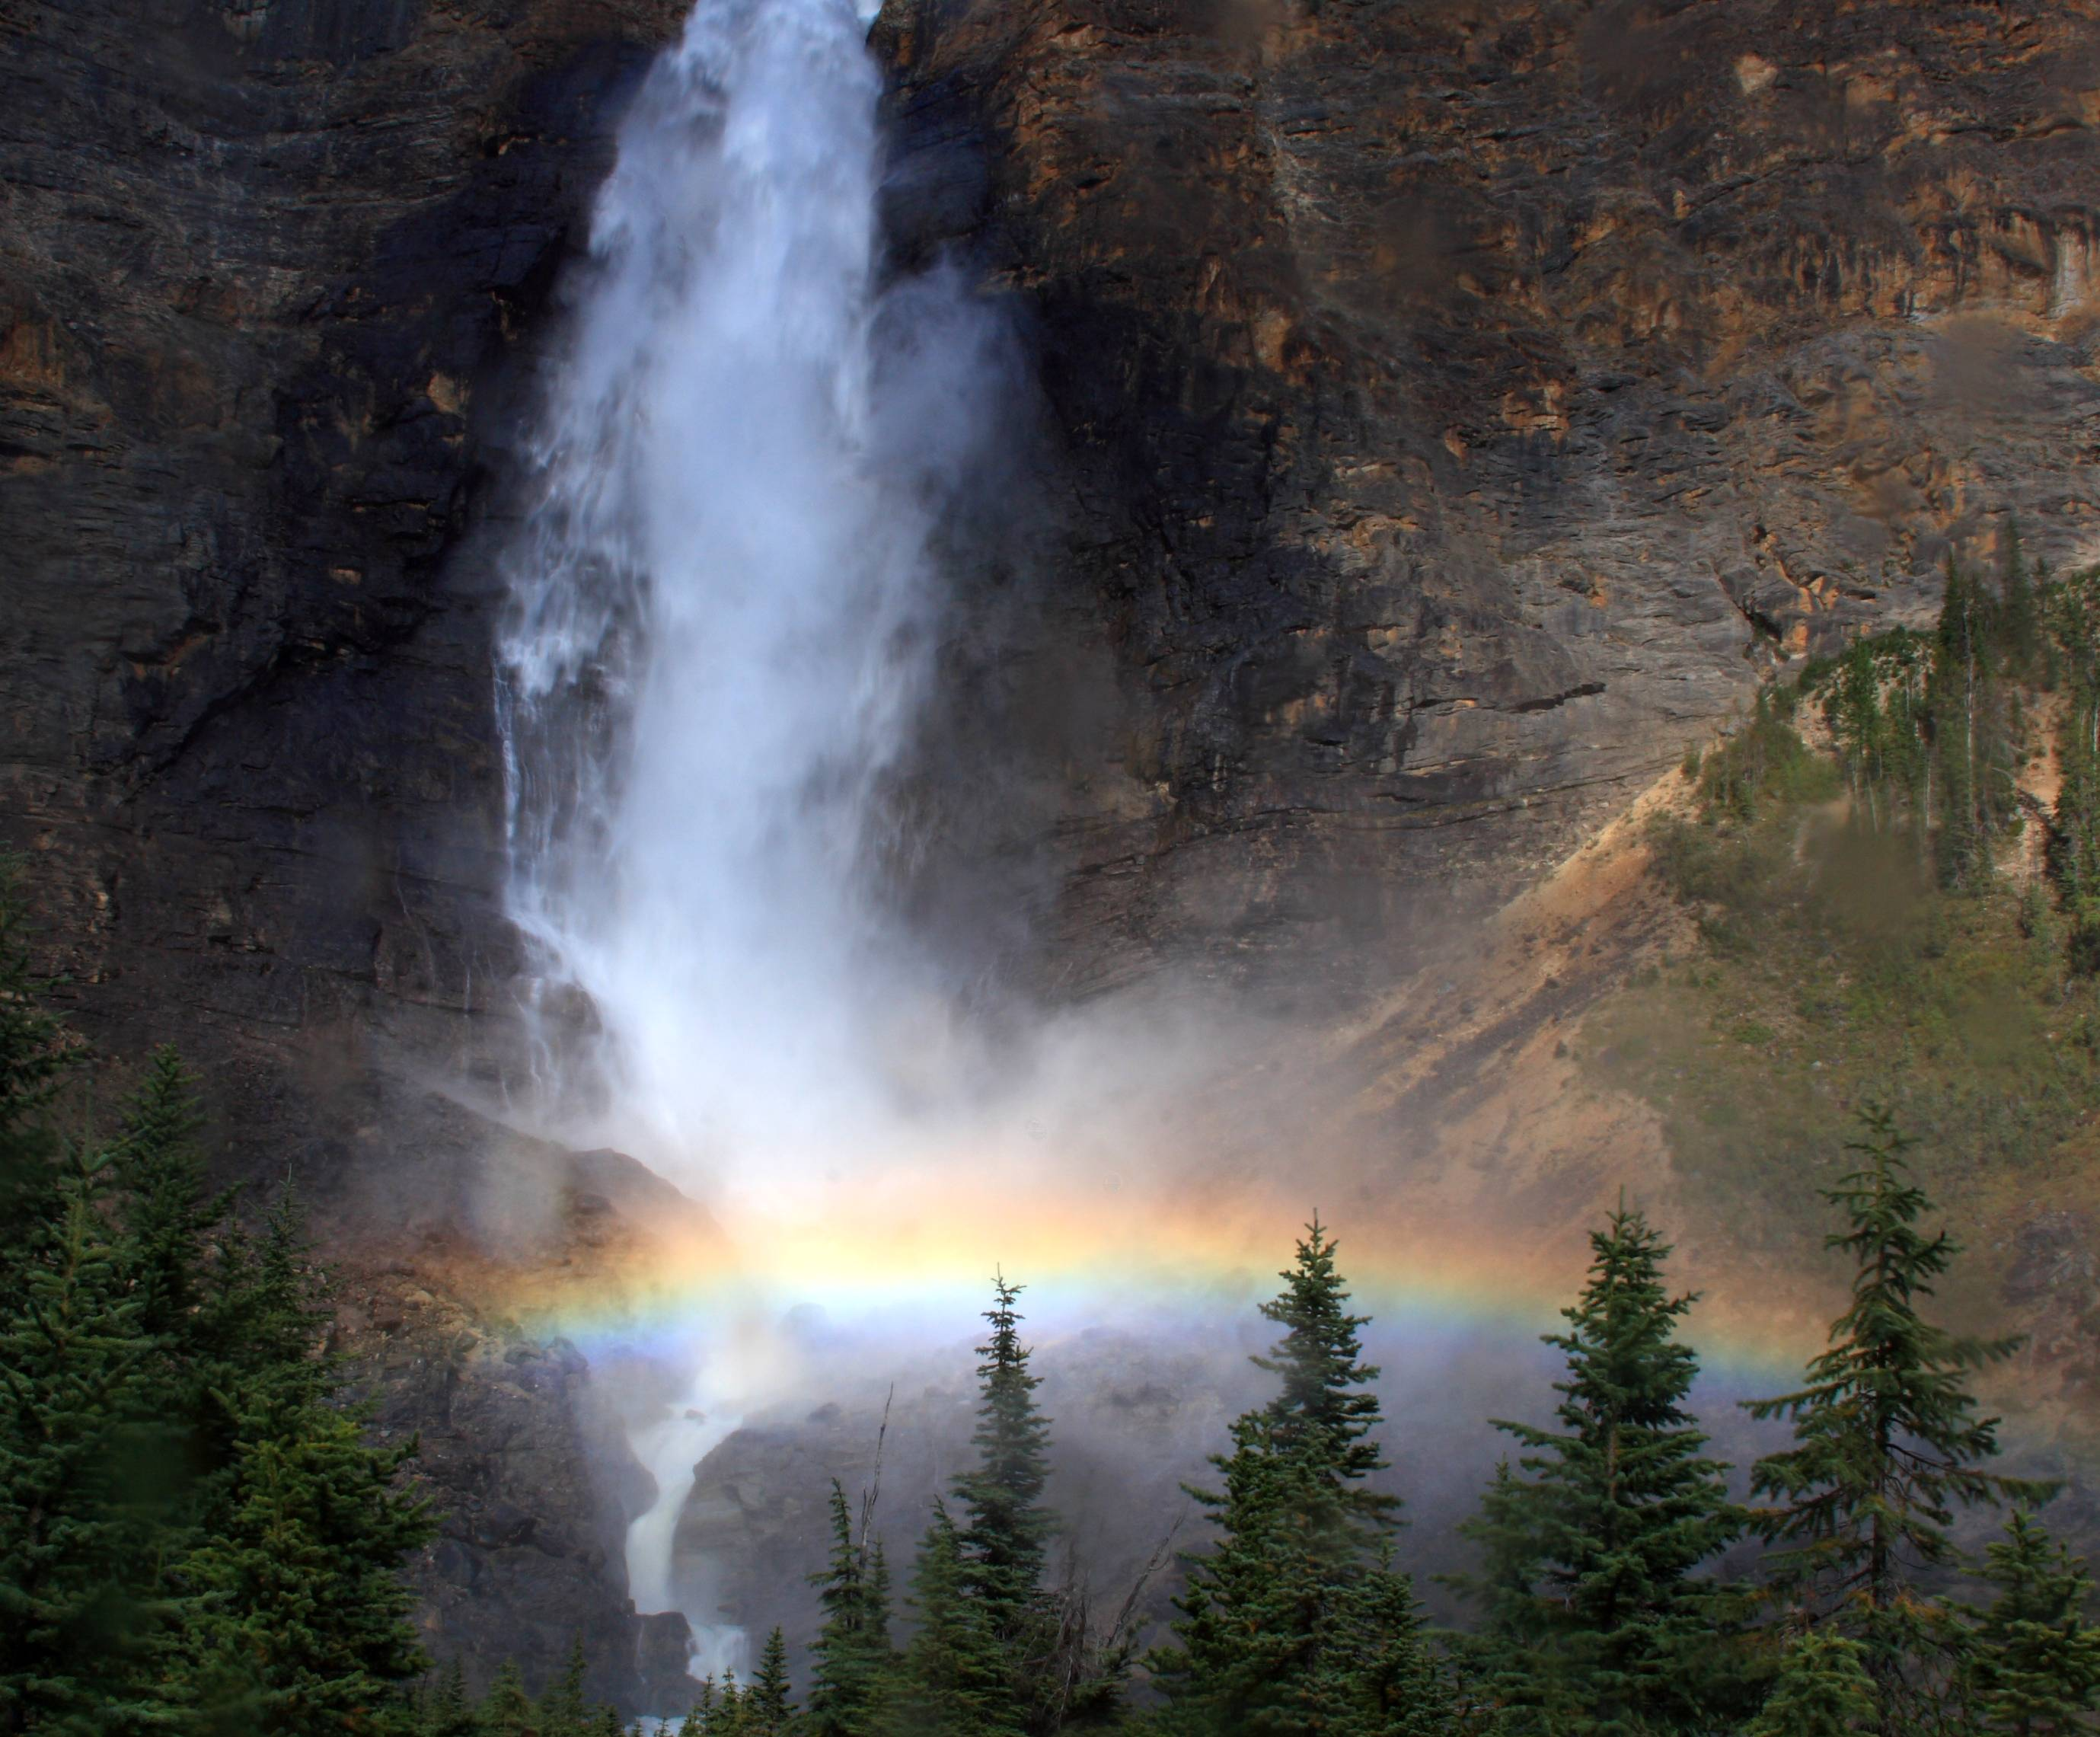 http://upload.wikimedia.org/wikipedia/commons/e/ea/Rainbow_at_the_base_of_Takakkaw_Falls%2C_Yoho_National_Park.jpg